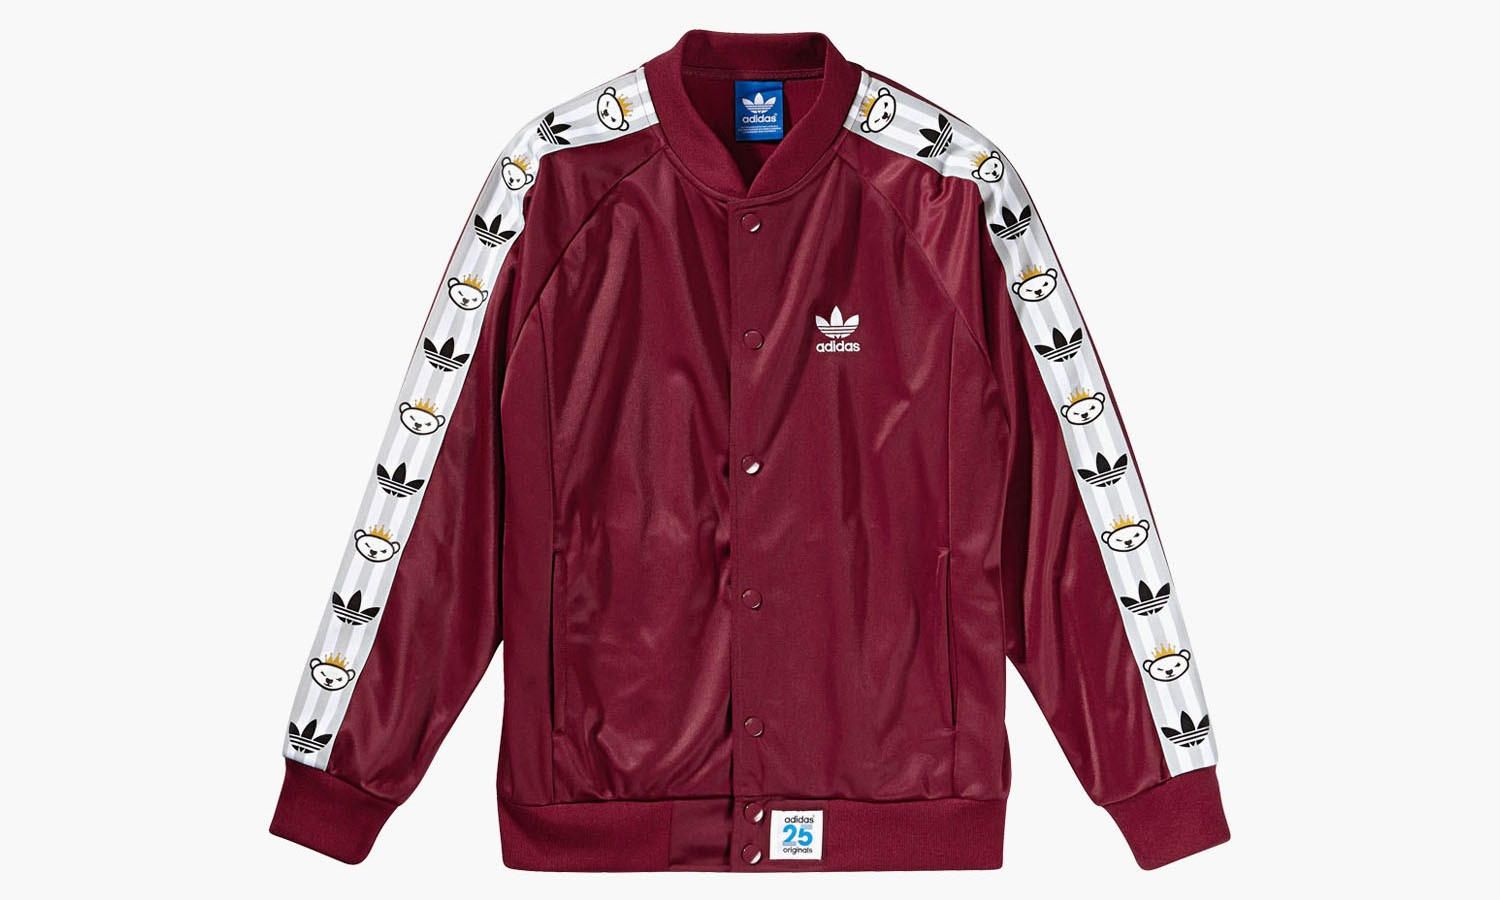 adidas Originals by NIGO 2014 秋冬全系服饰一览